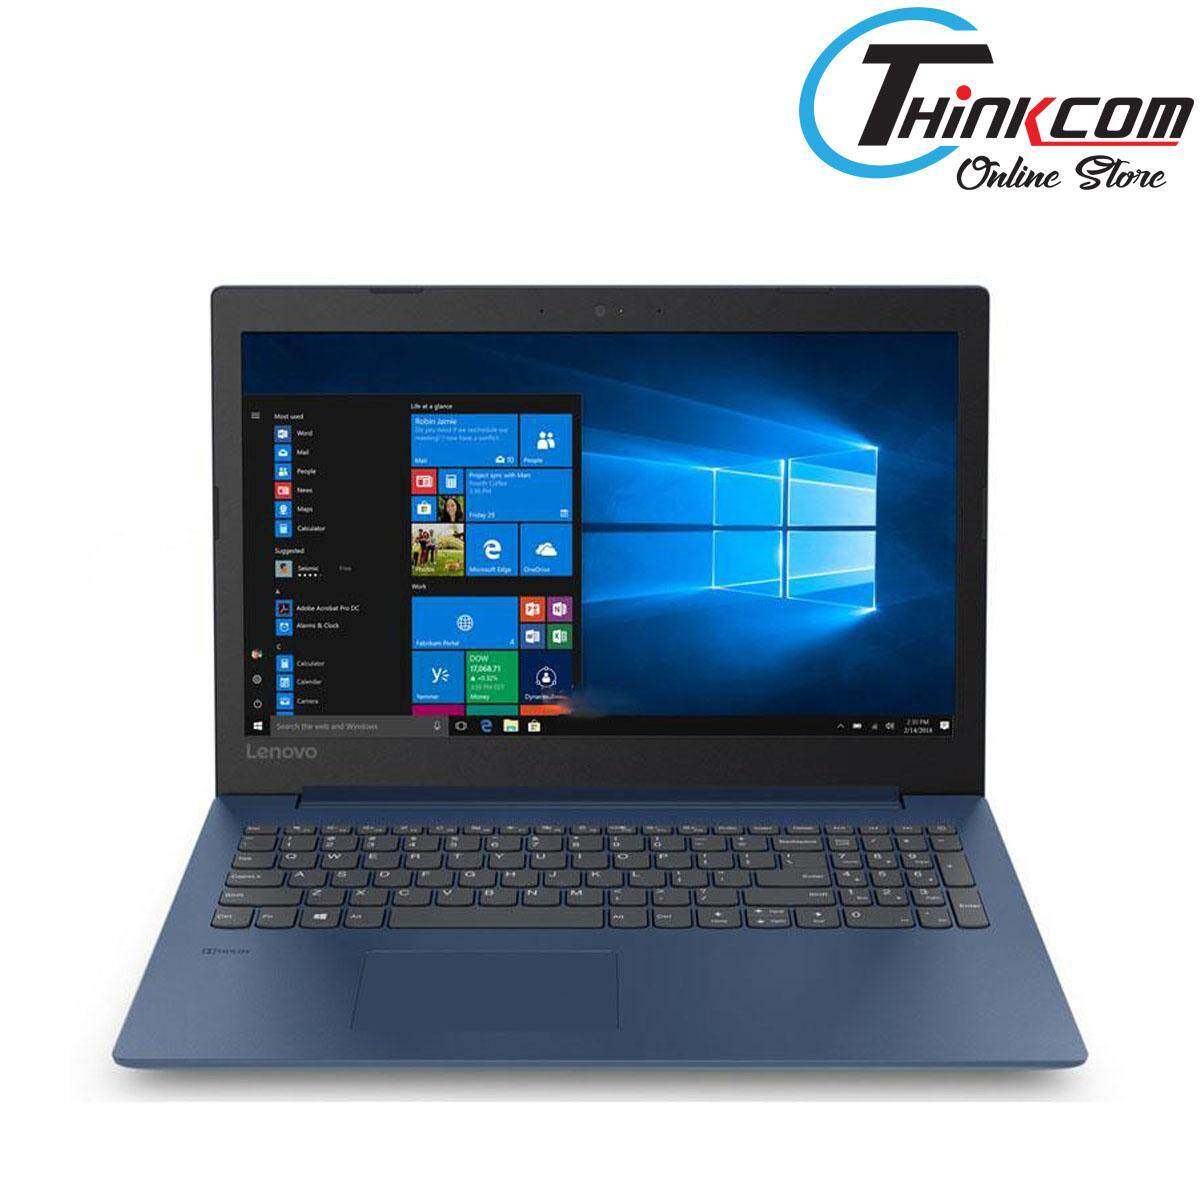 LENOVO IDEAPAD 330-15ICH - 81FK0056MJ / 81FK0057MJ BLUE / PLATINUM GREY (i5-8300H/ 4GBD4/ 1TB/  GTX1050 4GB DDR5 / W10H/ 15.6FHD/ 2Y On-Site + Premium Care) Malaysia